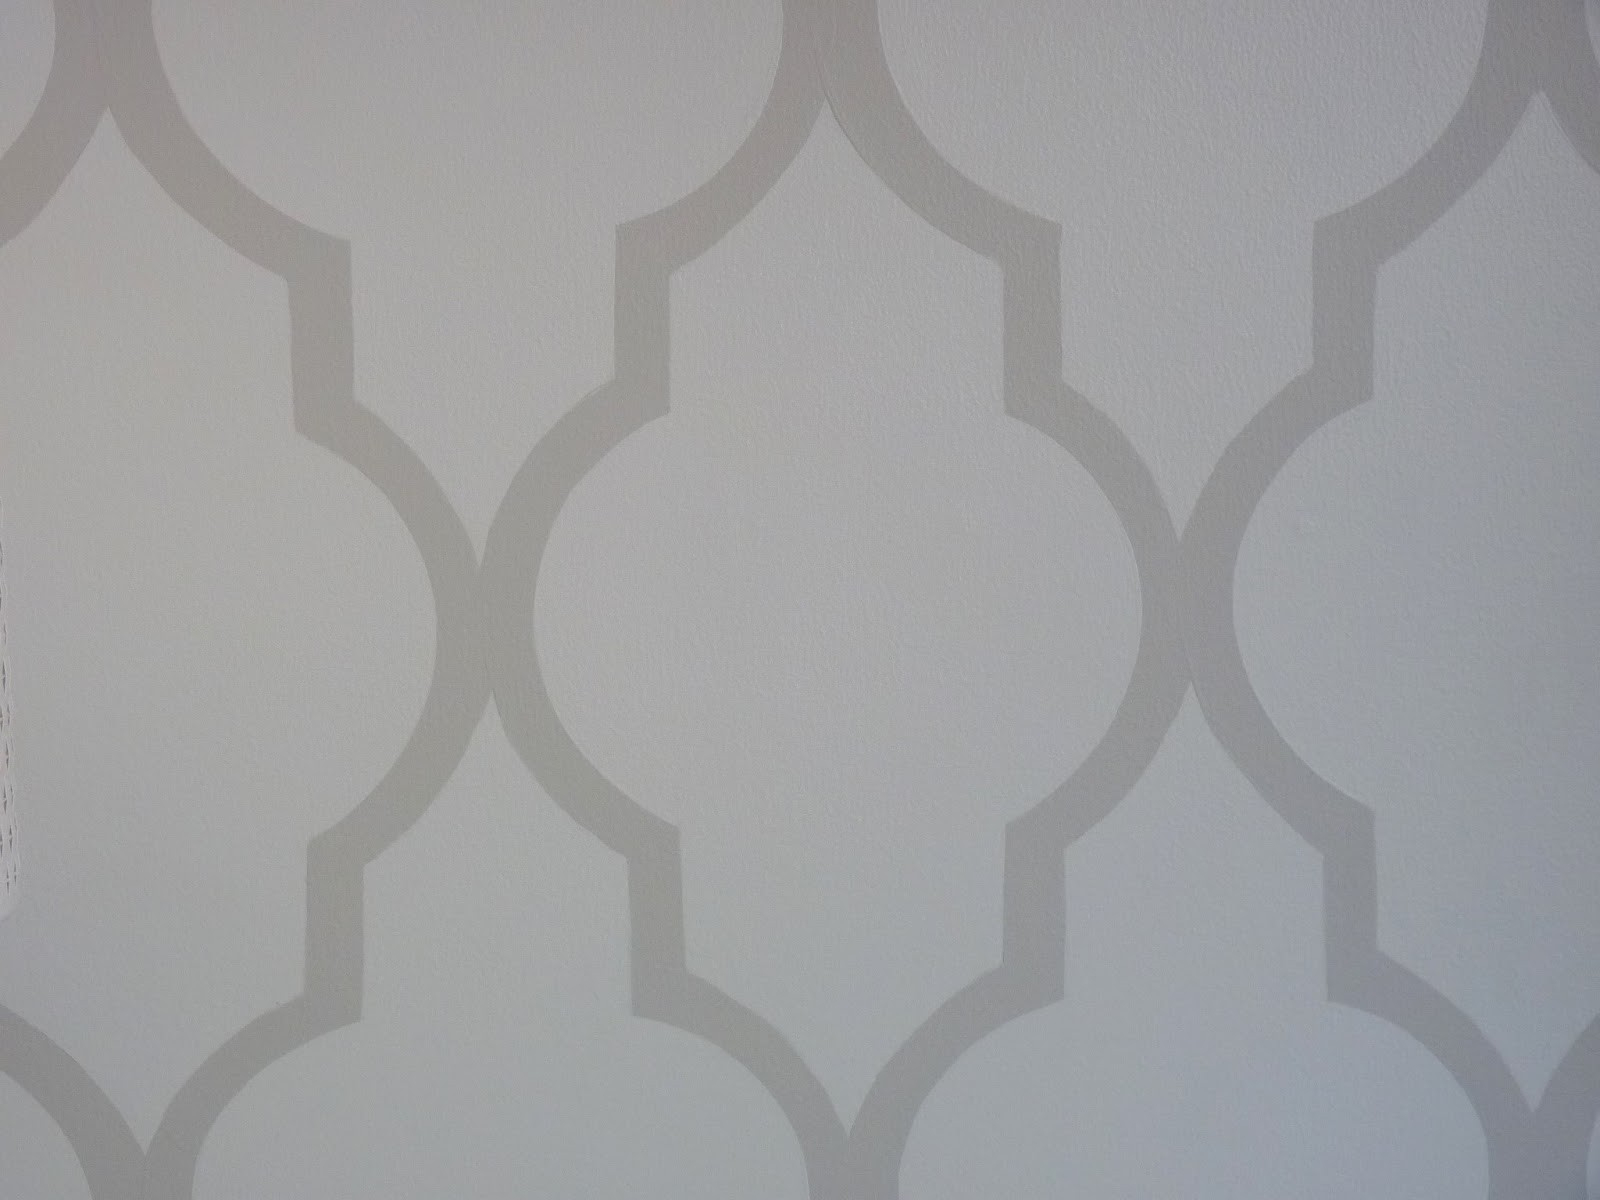 Lovely Free Printable Moroccan Wall Stencils | Www.pantry-Magic - Free Printable Moroccan Wall Stencils